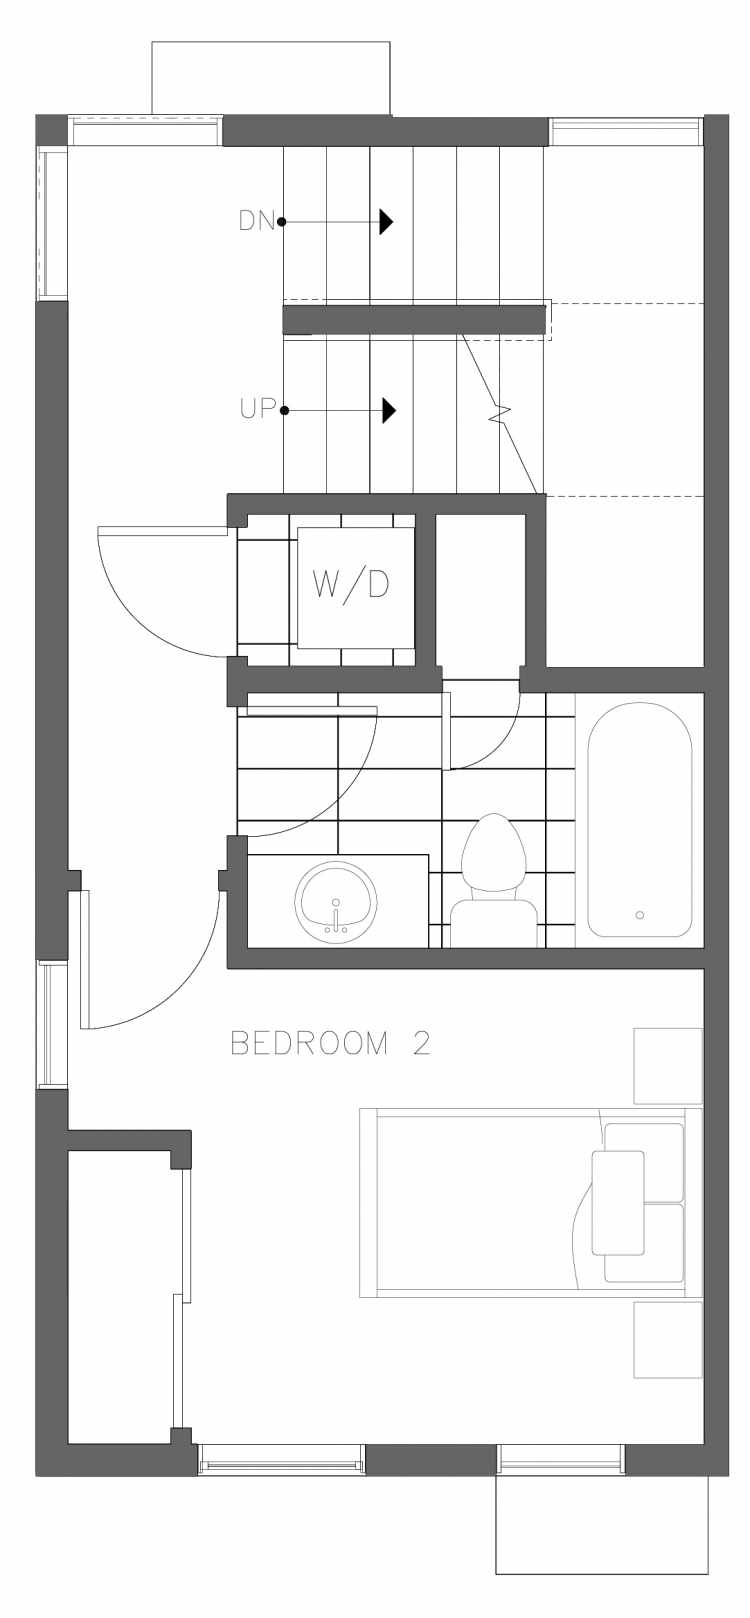 Second Floor Plan of 1730C 11th Ave, One of the Altair Townhomes in Capitol Hill by Isola Homes